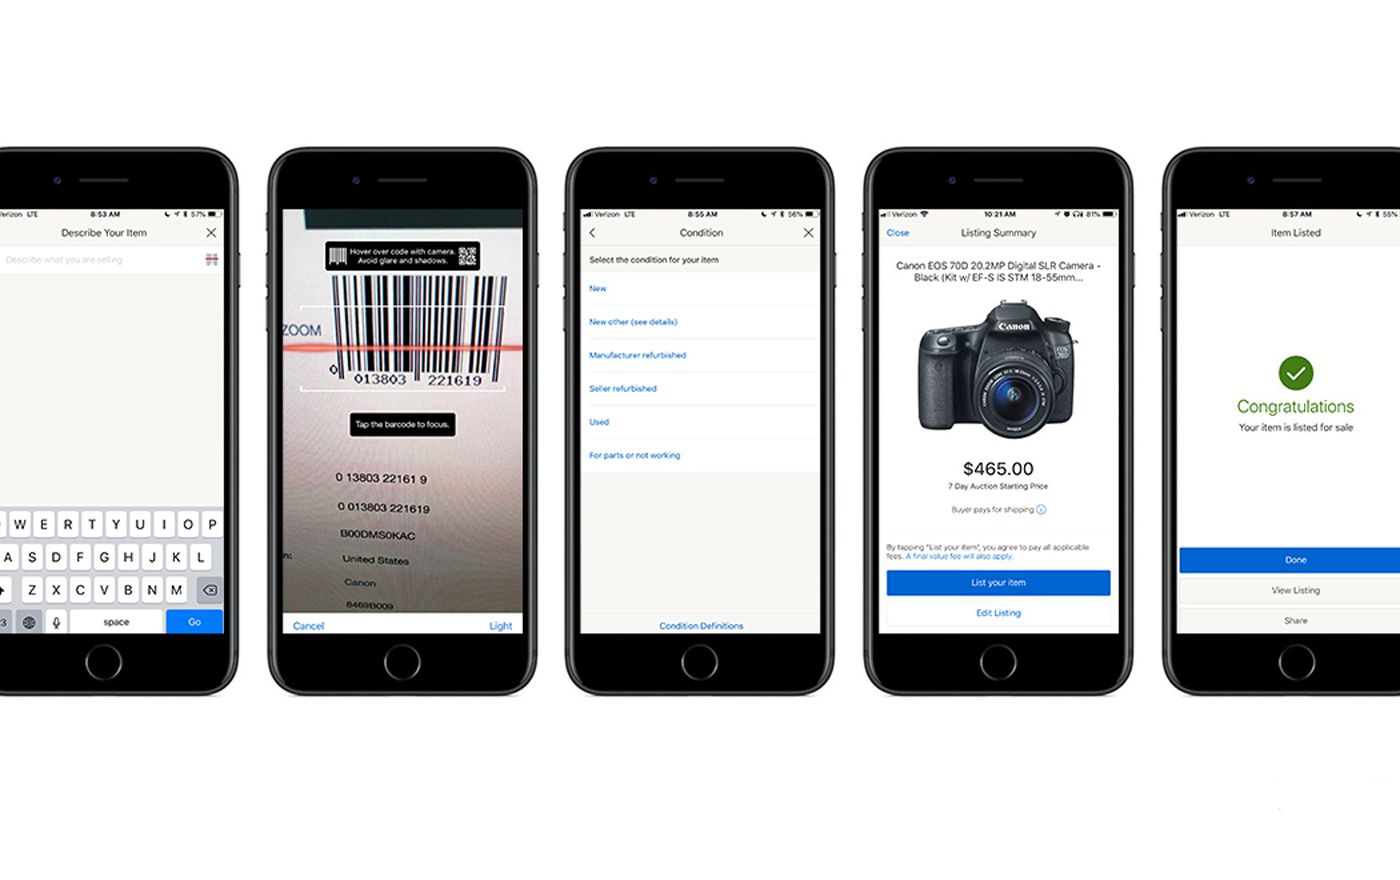 Ebay Now Lets Sellers Autofill Listings By Scanning Product Barcodes The Verge